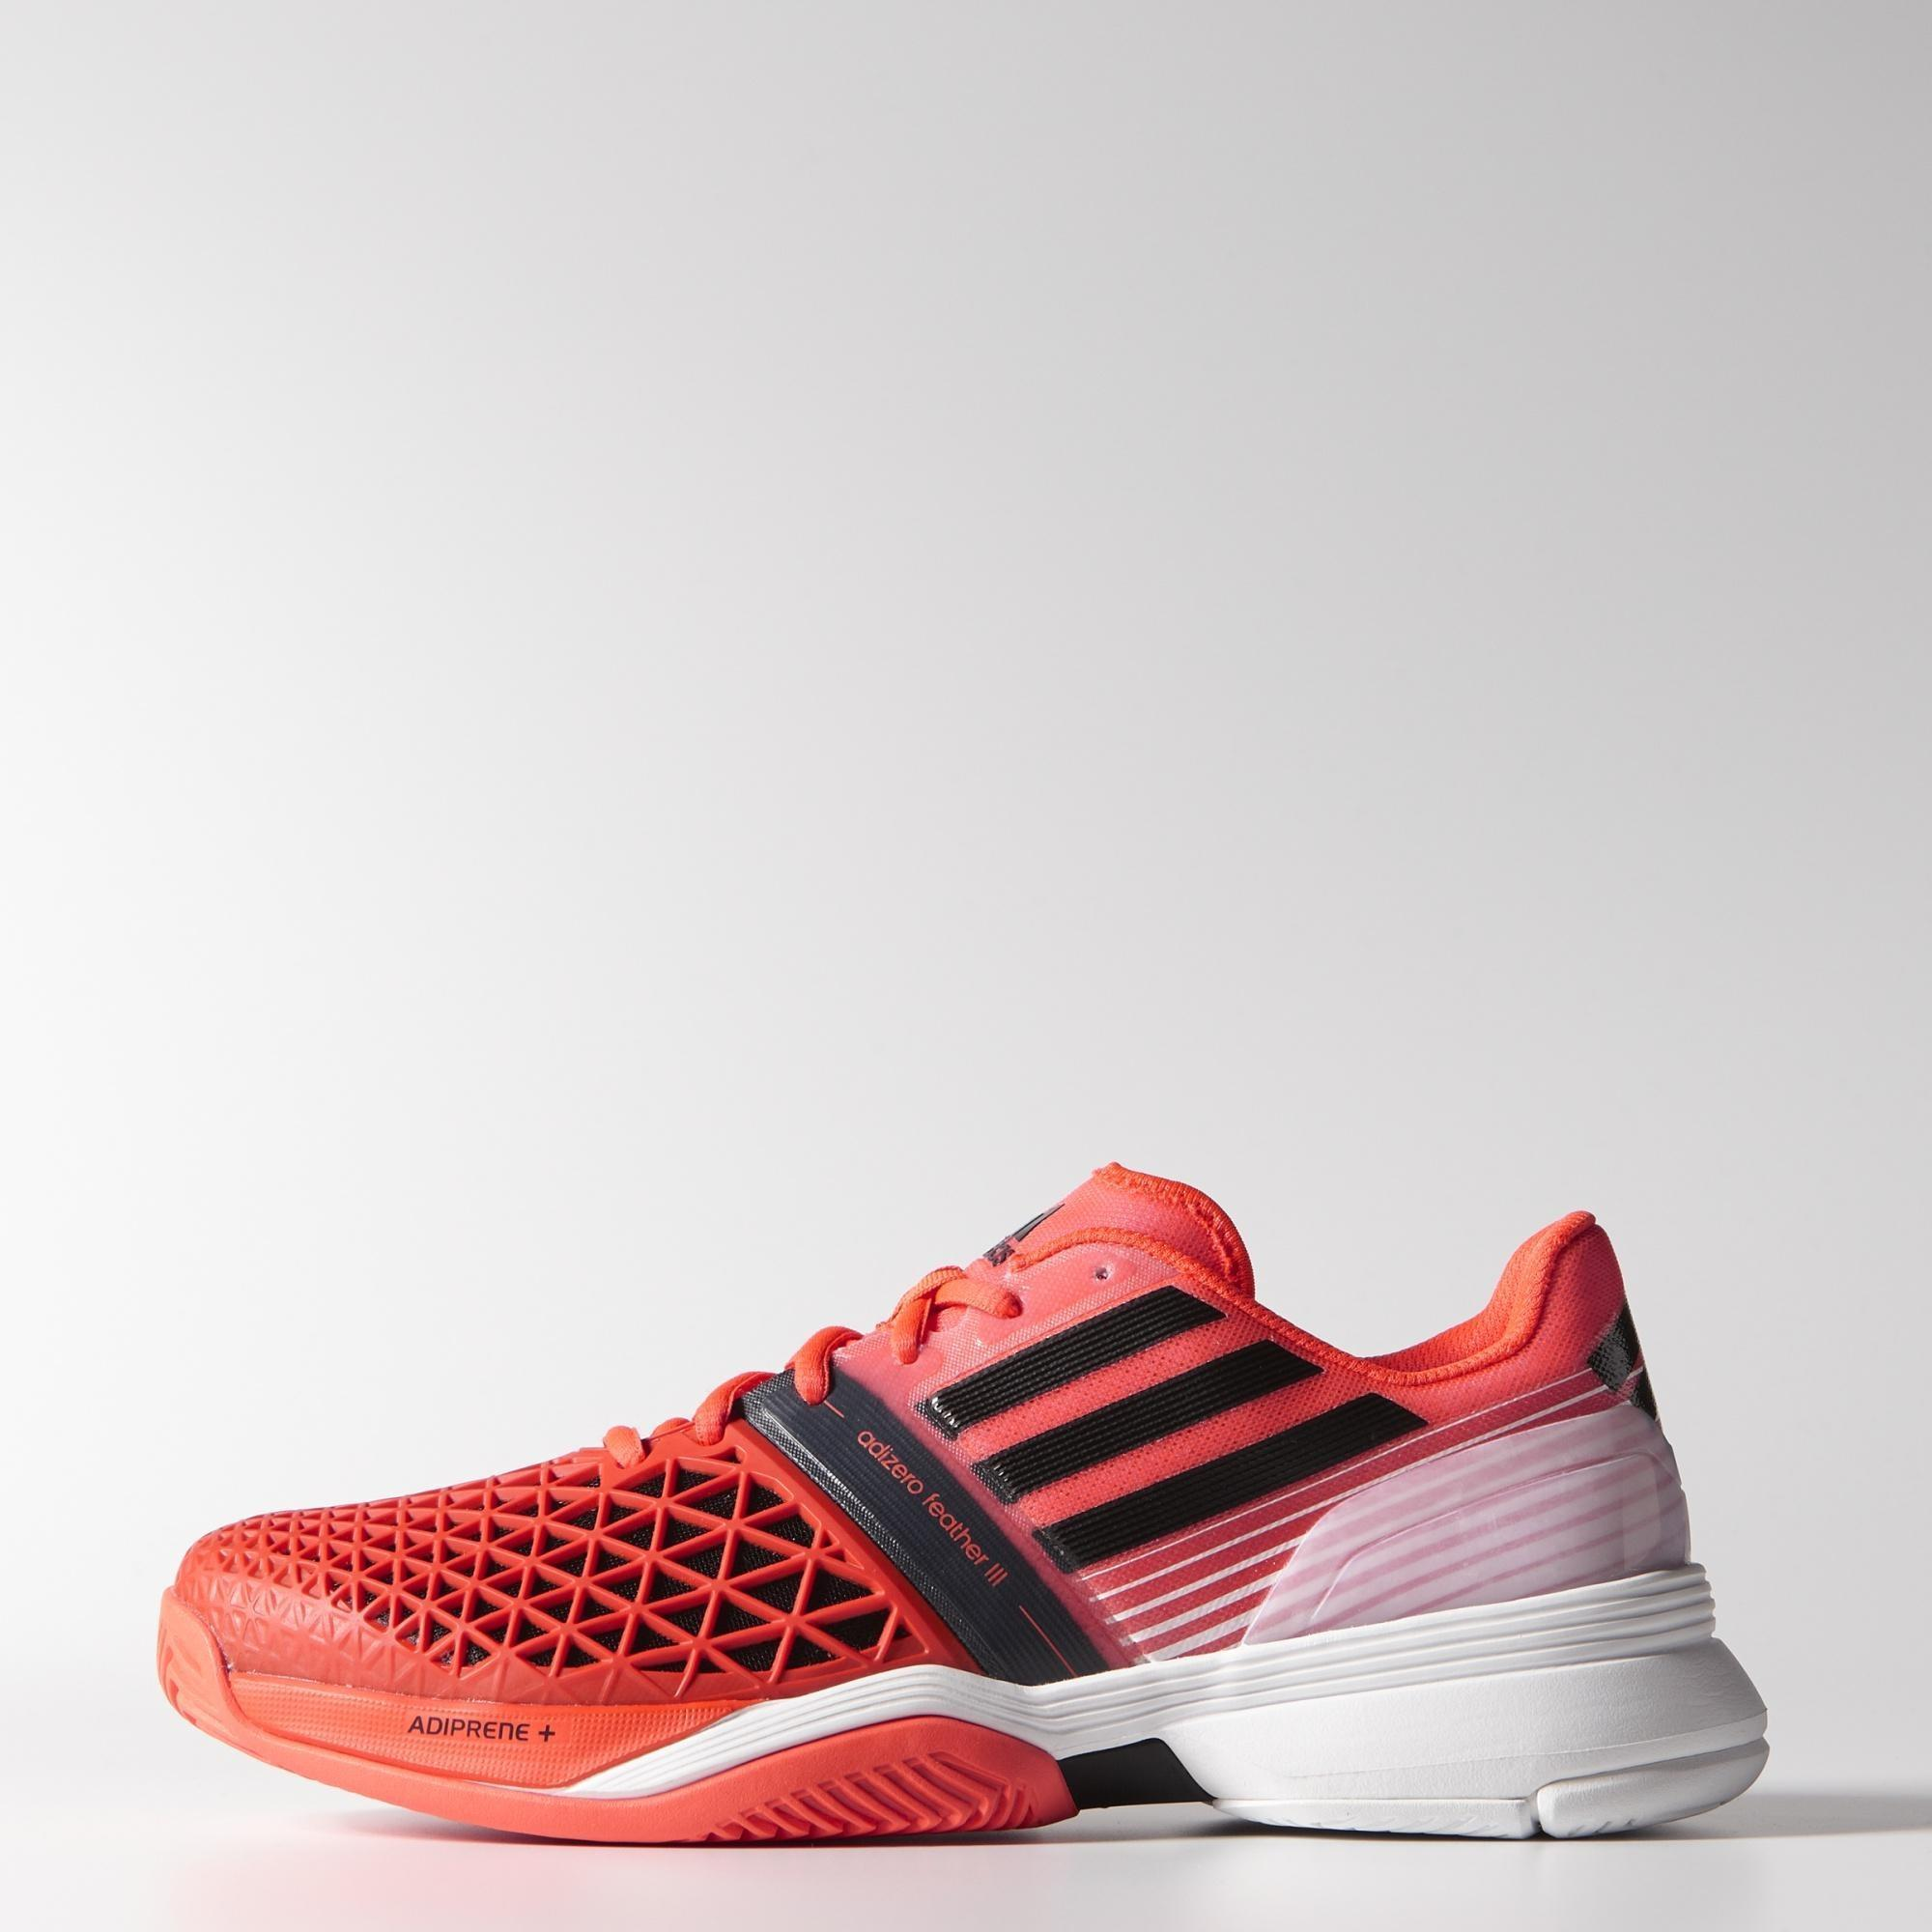 50e63fdaa6b1 Adidas Mens CC Adizero Feather III Tennis Shoes - Solar Red - Tennisnuts.com